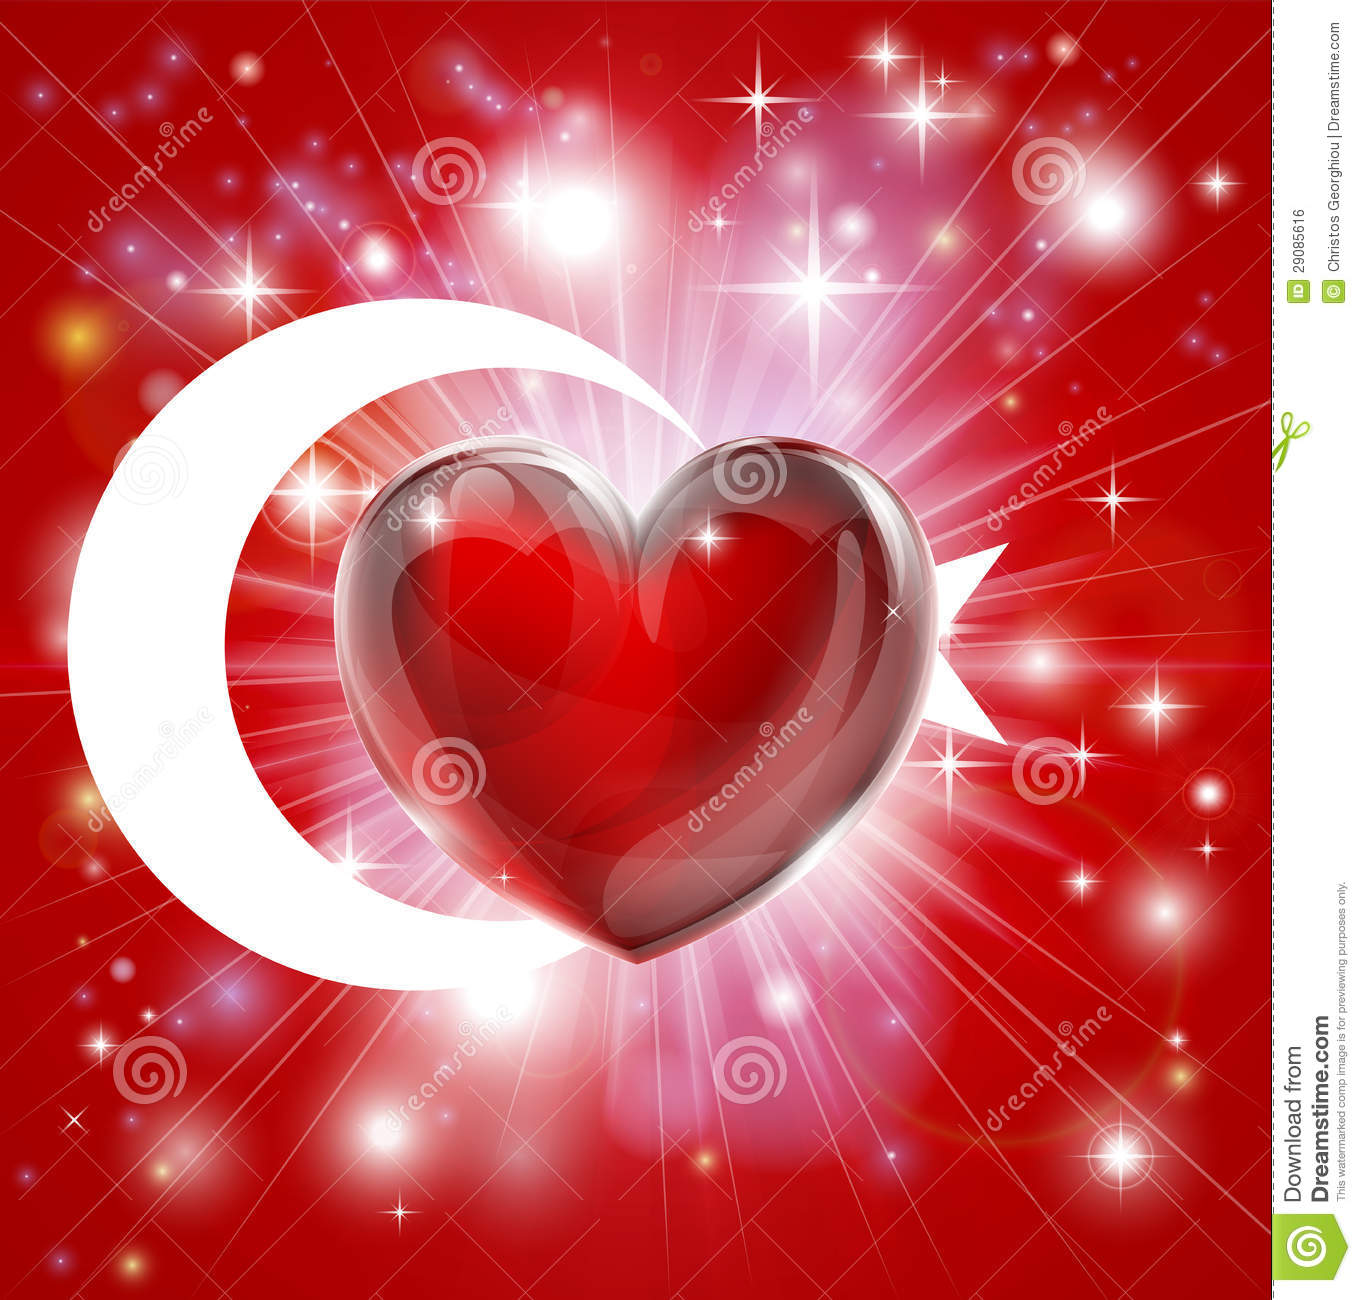 love turkey flag heart background royalty free stock image clip art of turkey in hair rollers clipart of turkey leg